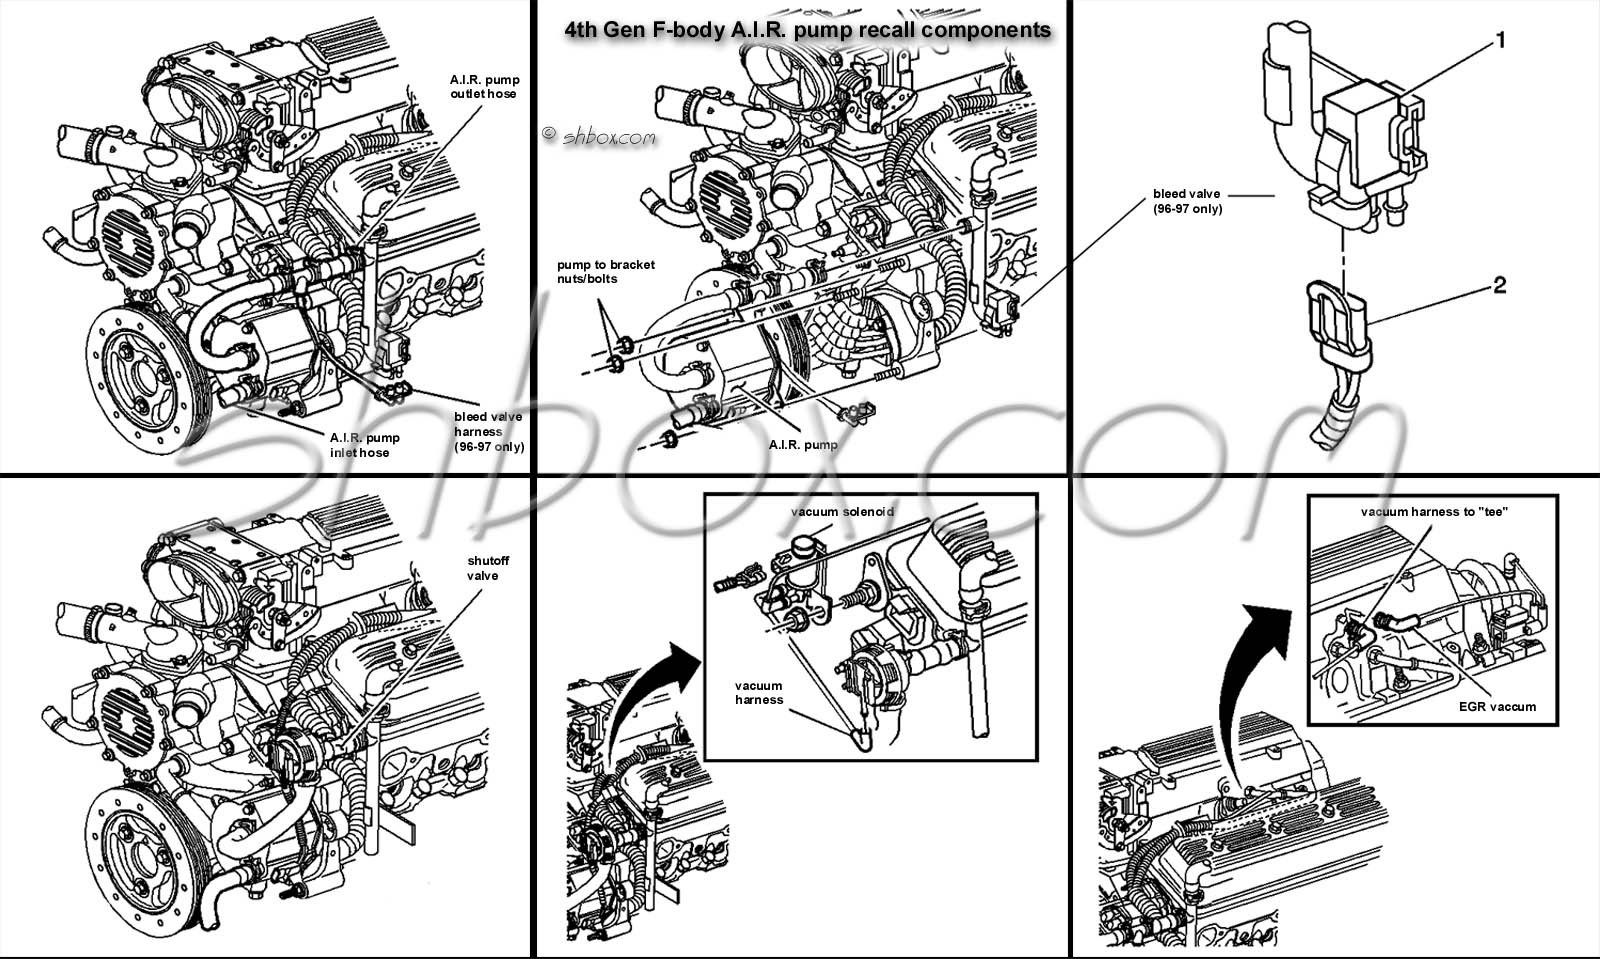 hight resolution of 95 camaro engine diagram wiring diagrams favorites 1996 camaro engine diagram wiring diagram used 95 camaro